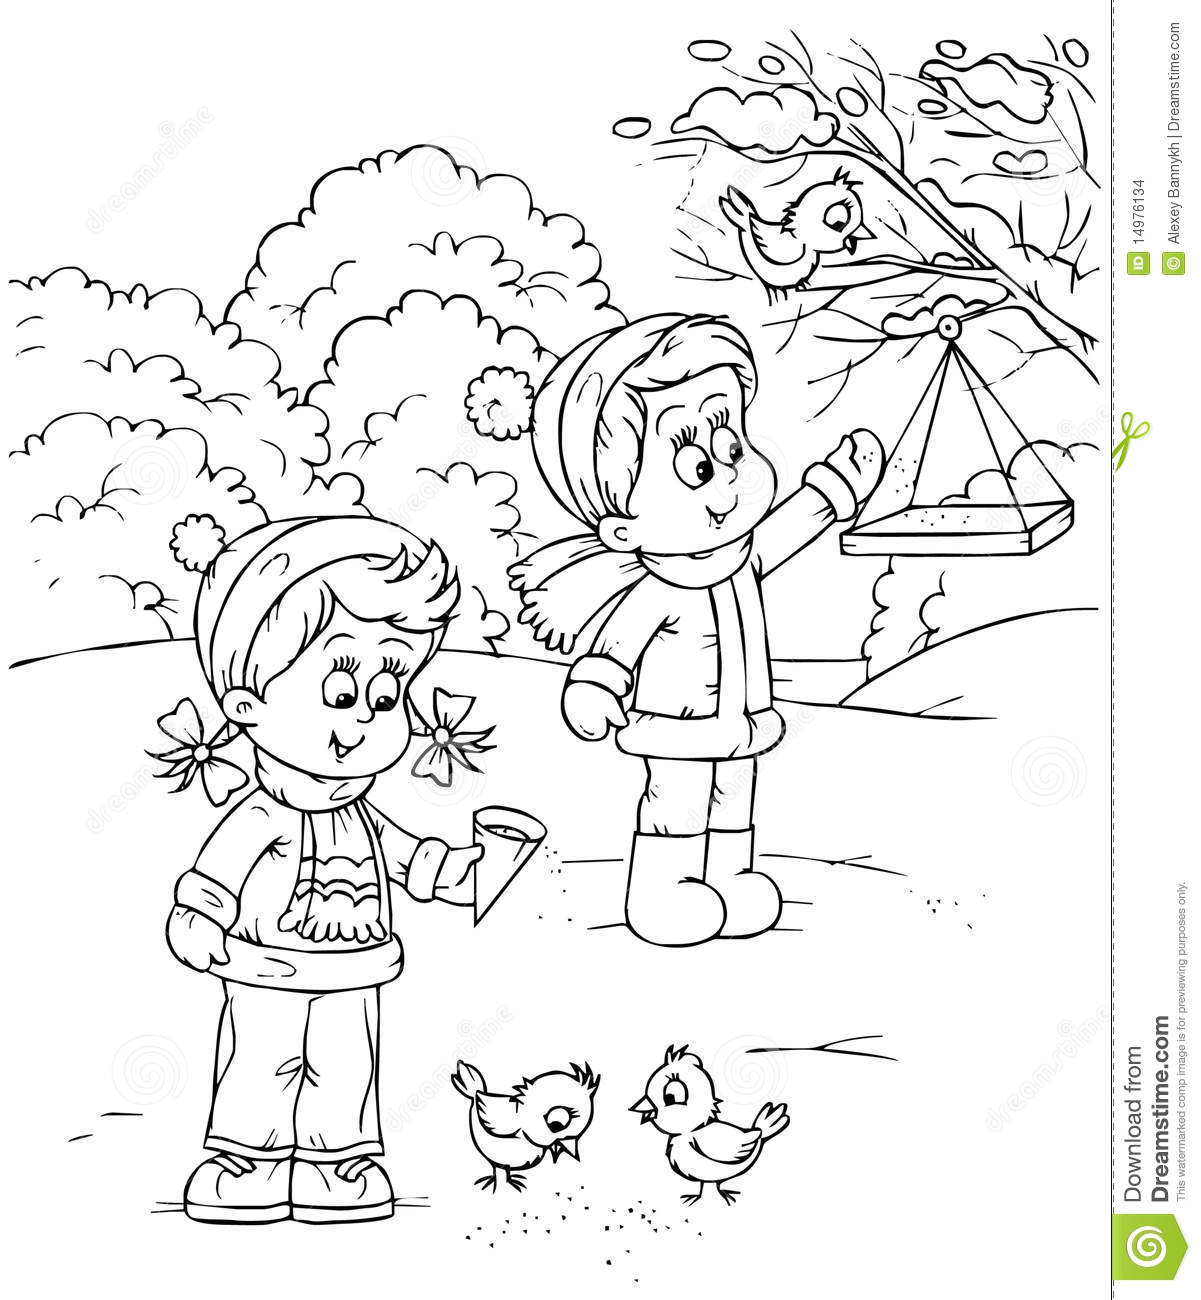 children playing in the park clipart black and white 6 » clipart station